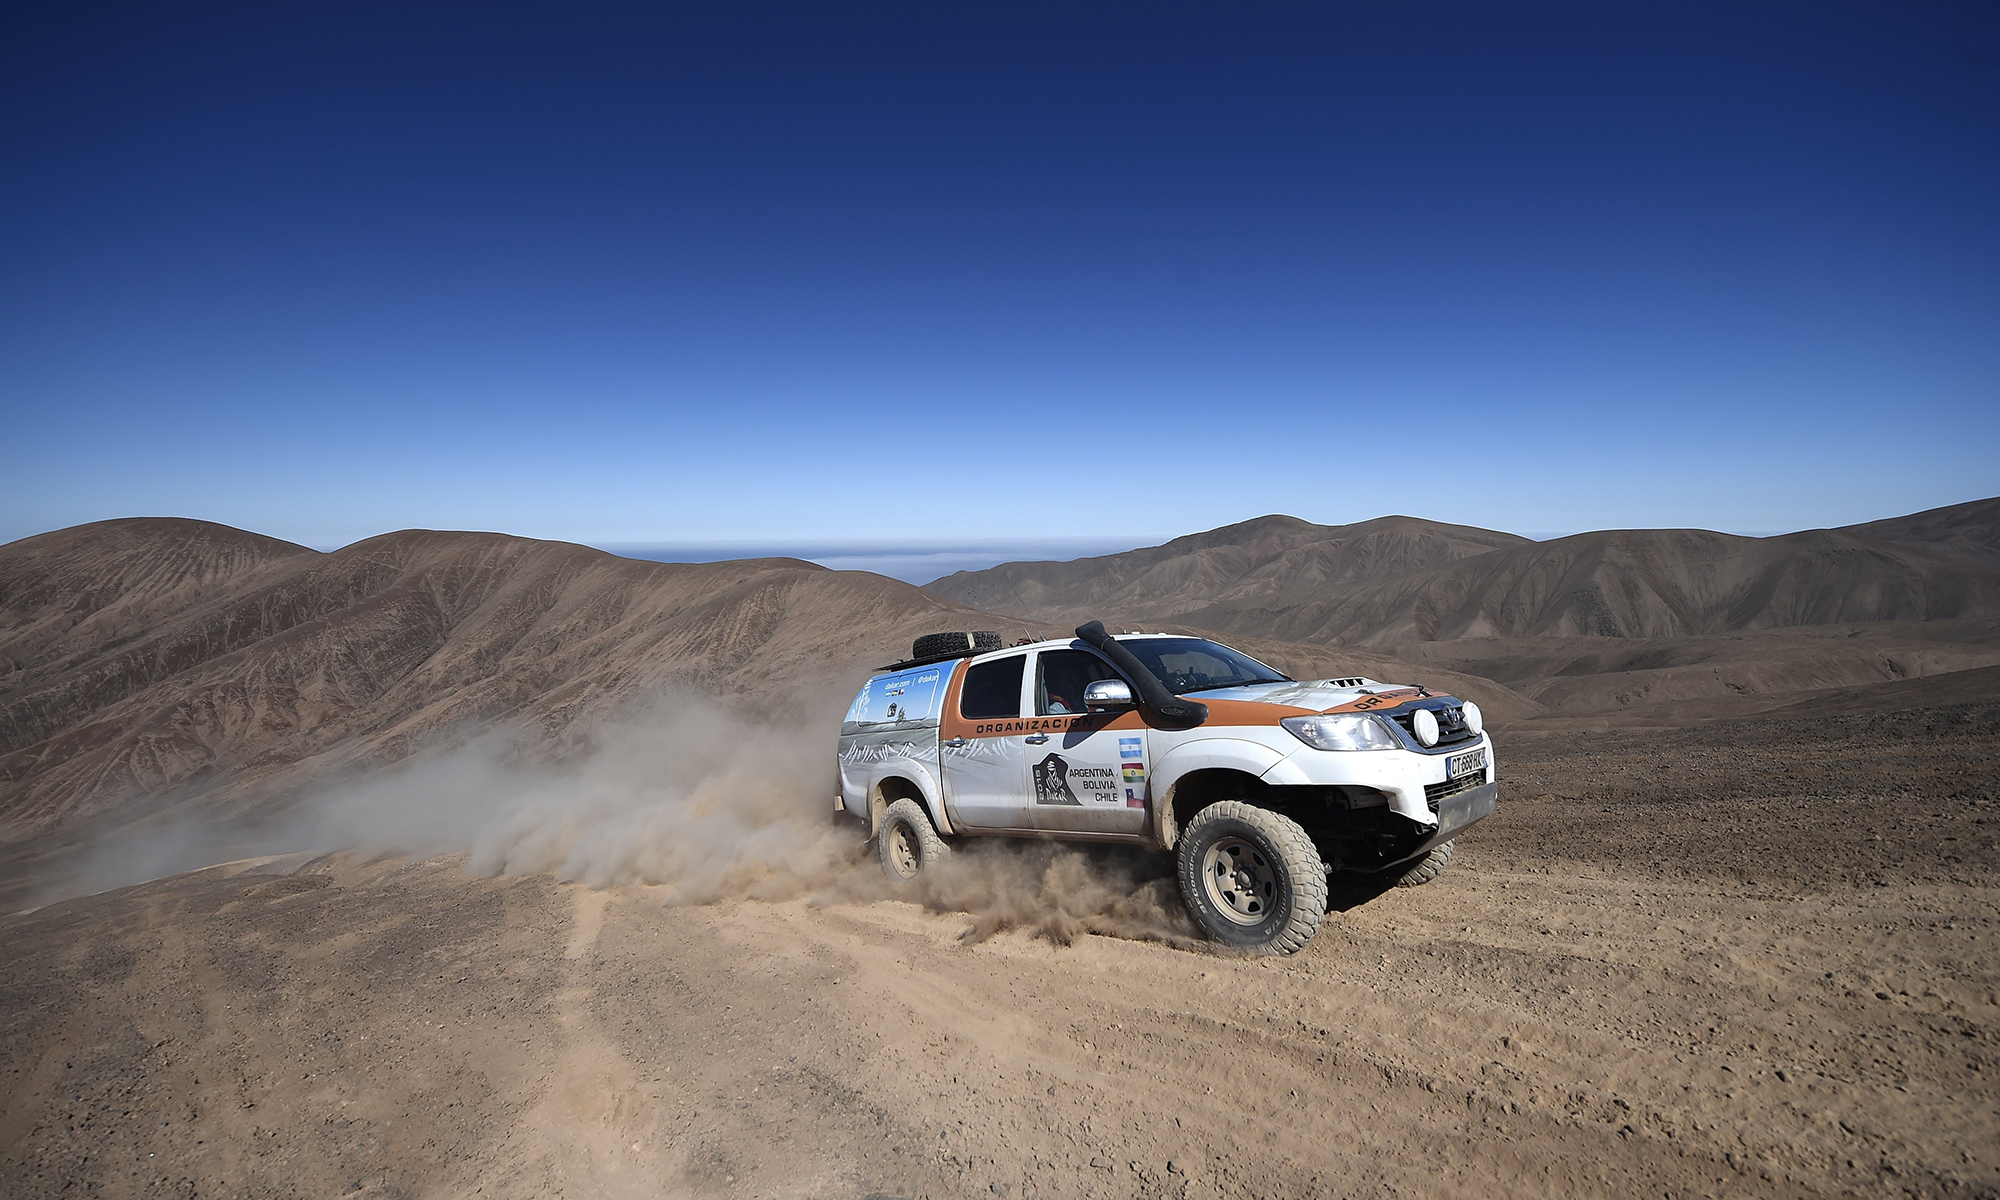 Amazing Dakar Rally Pictures & Backgrounds